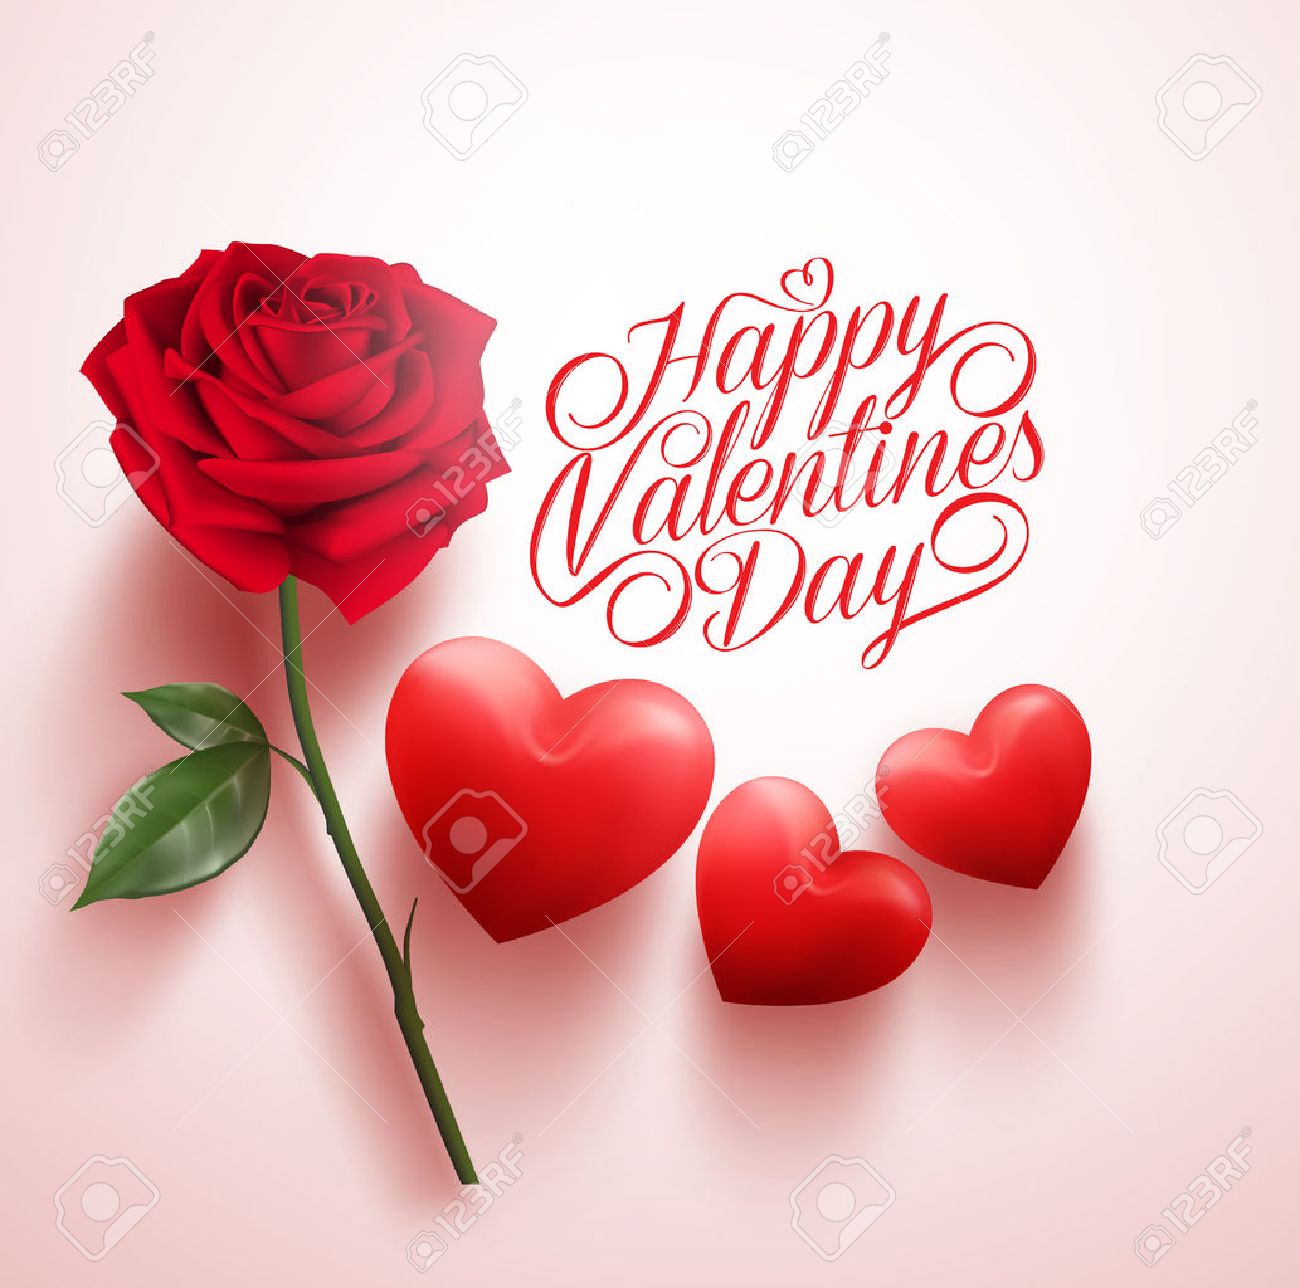 3D Realistic Red Rose and Hearts with Happy Valentines Day Message. Vector Illustration - 50901909